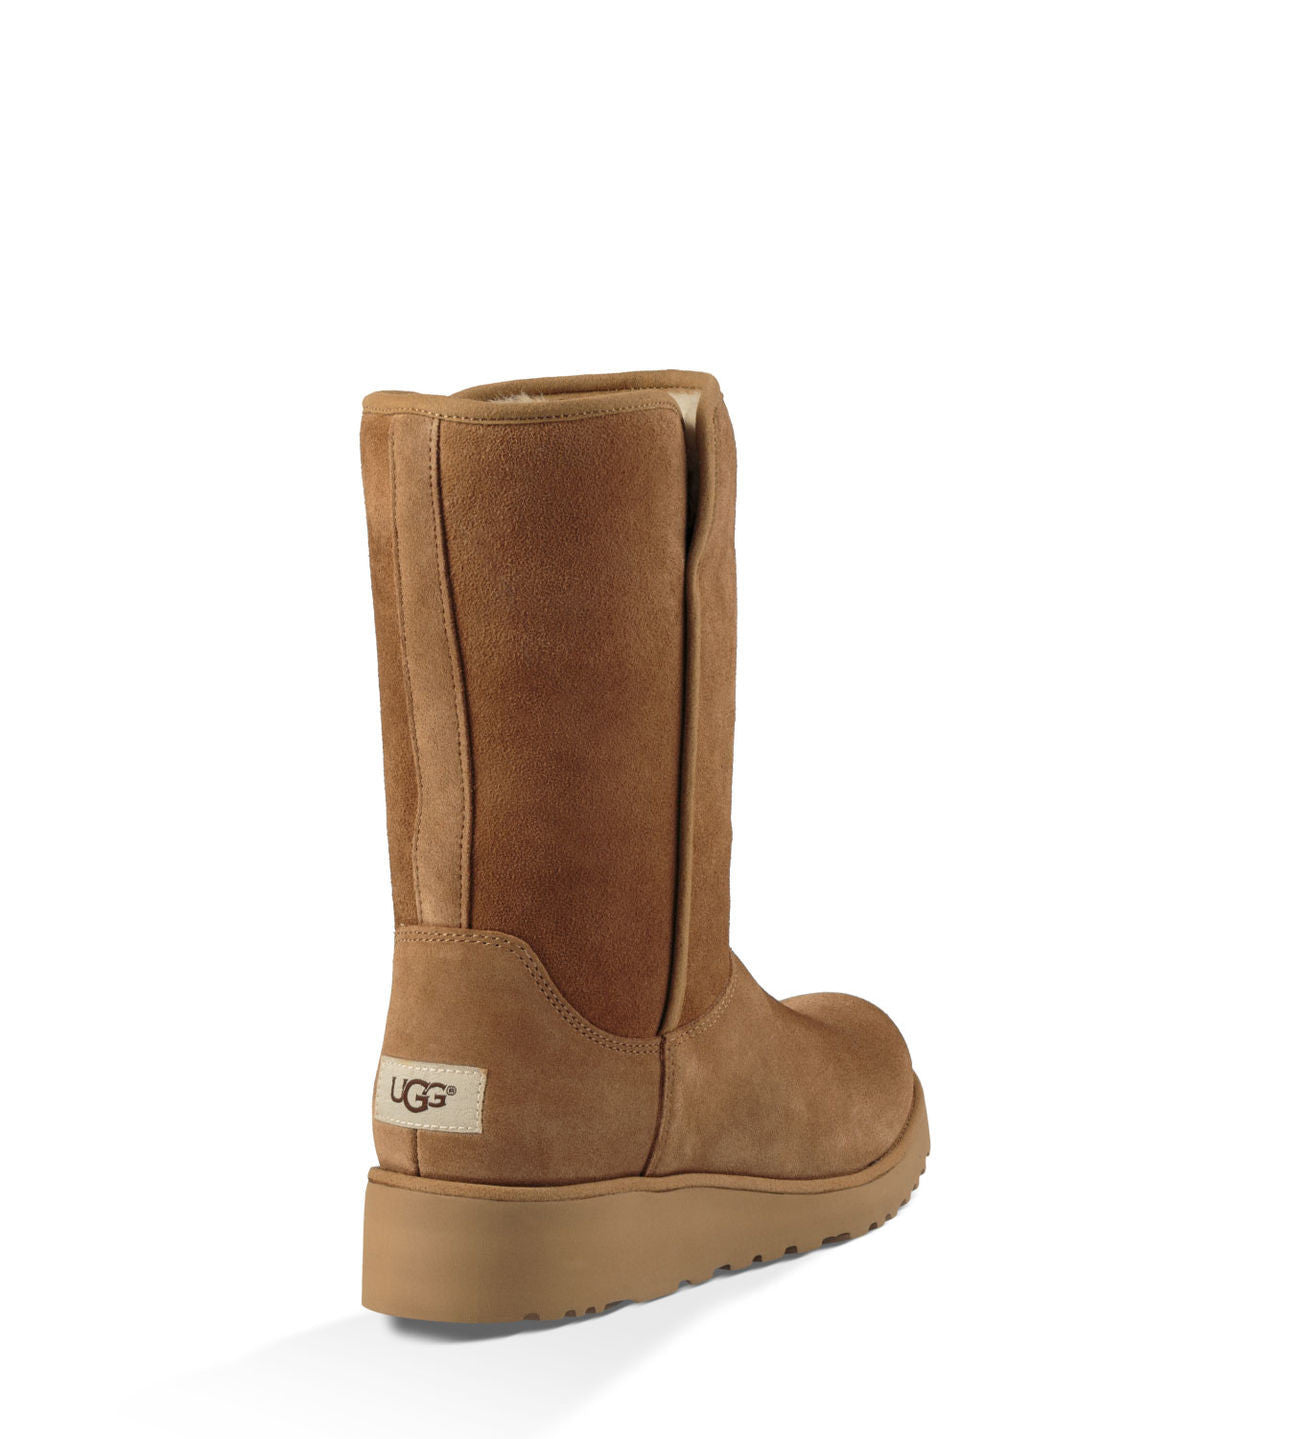 f8138ec878d UGG AMIE TALL BOOTS IN CHESTNUT